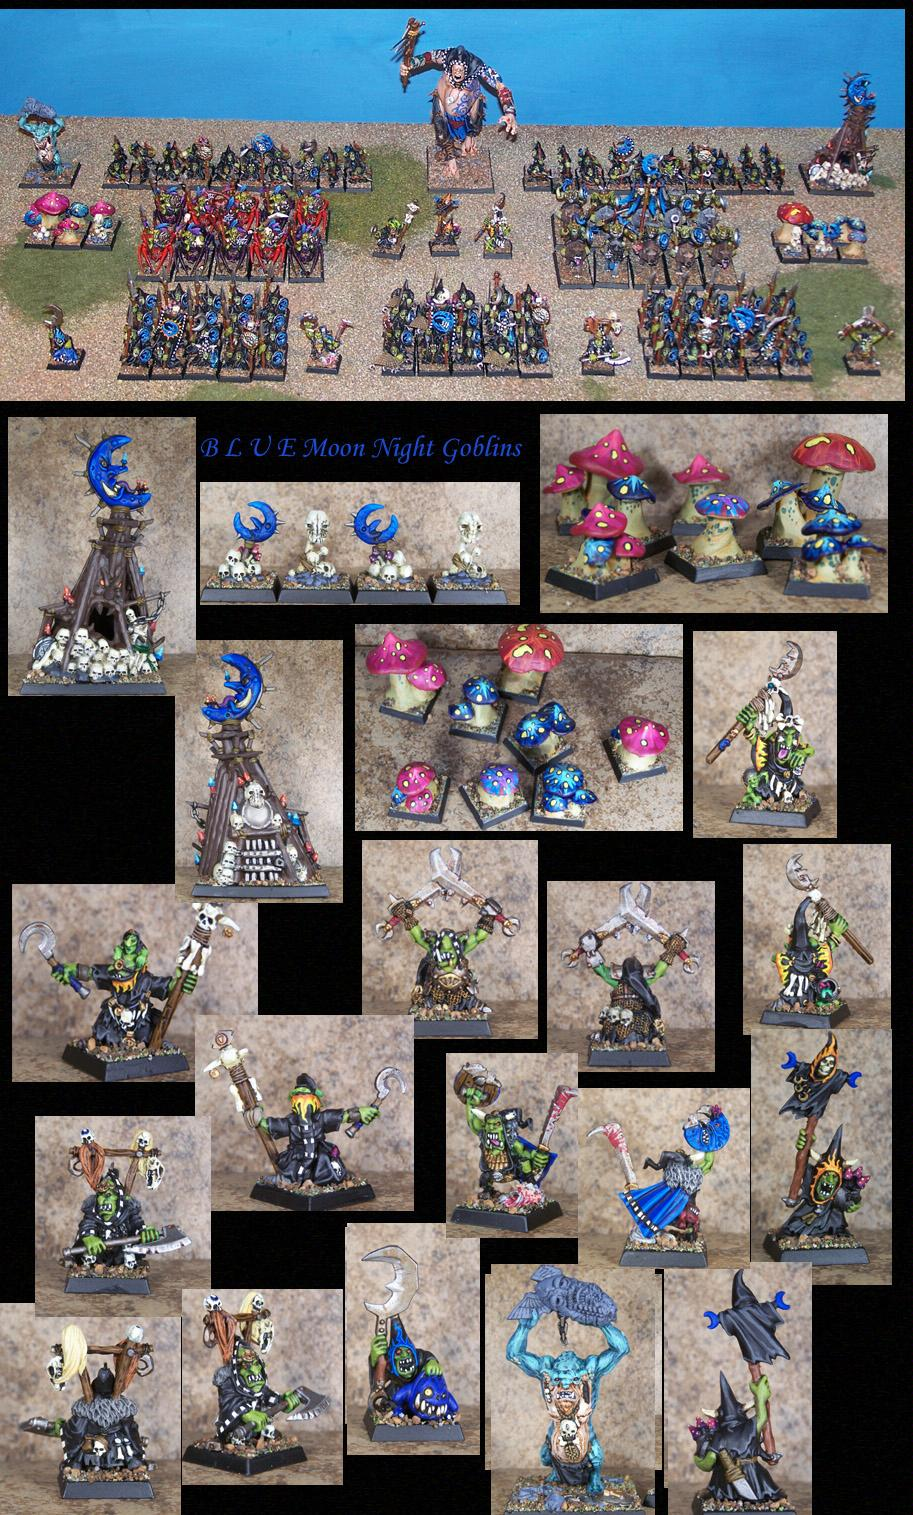 Giant, Goblins, Gobos, Night Goblins, Orcs, Orcs And Goblins, Orks, Pro Painted, Rpg, Warhammer Fantasy